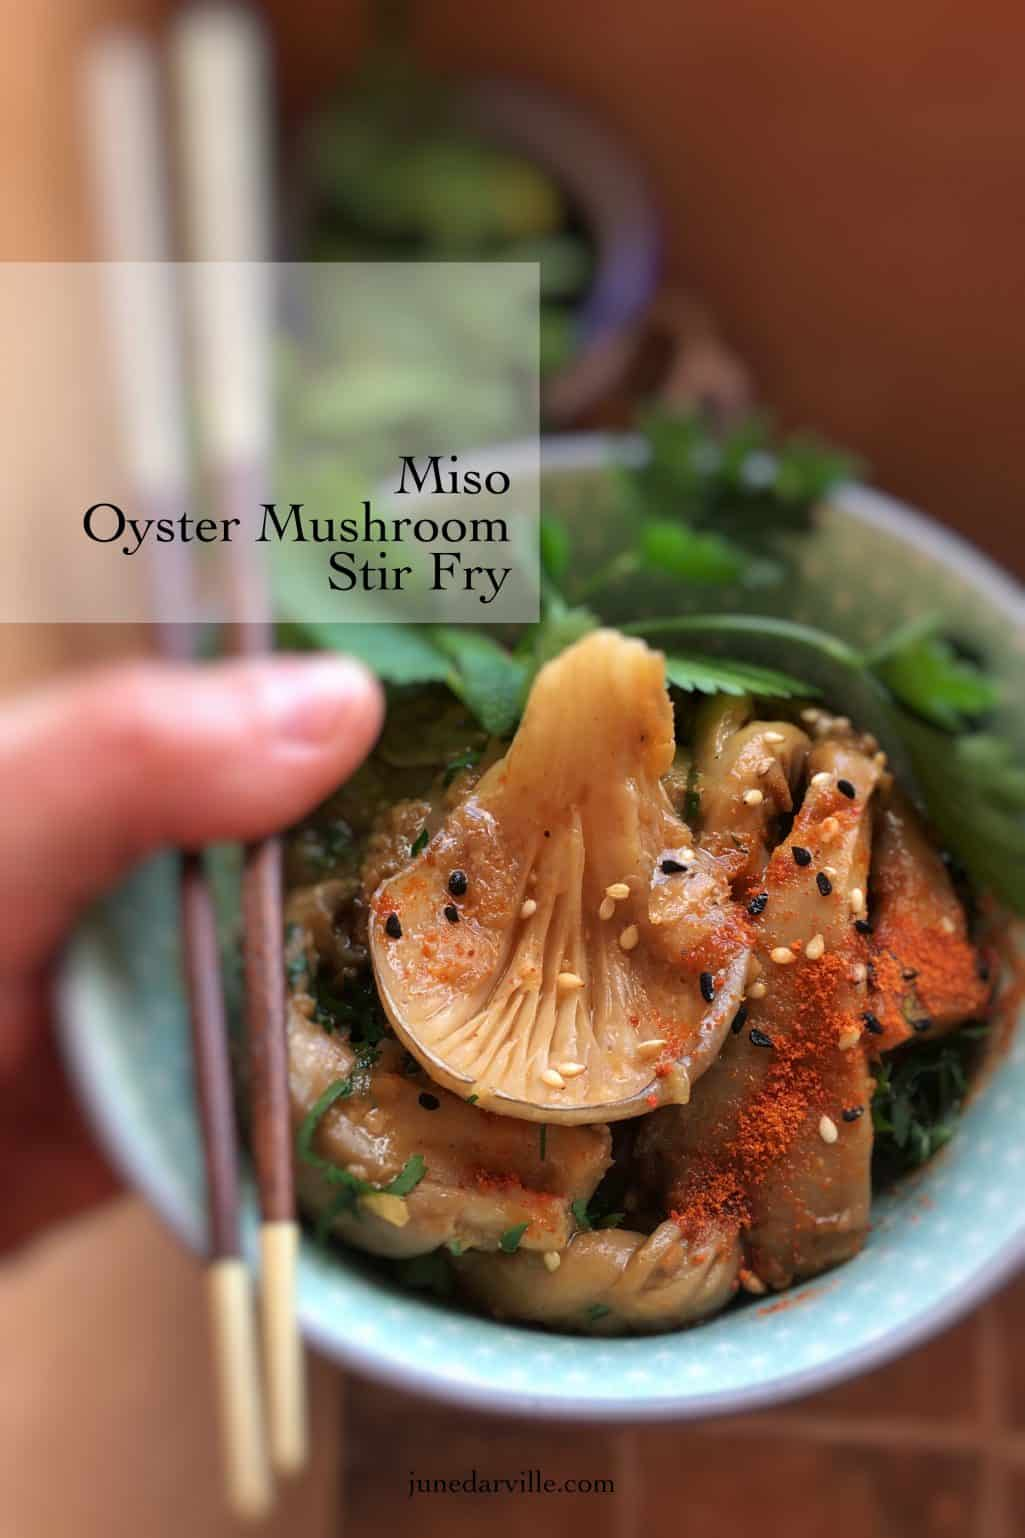 Serve this strong miso mushroom stir fry as a side dish with steak! Or as a vegetable stir fry with steamed rice... Enjoy this one!